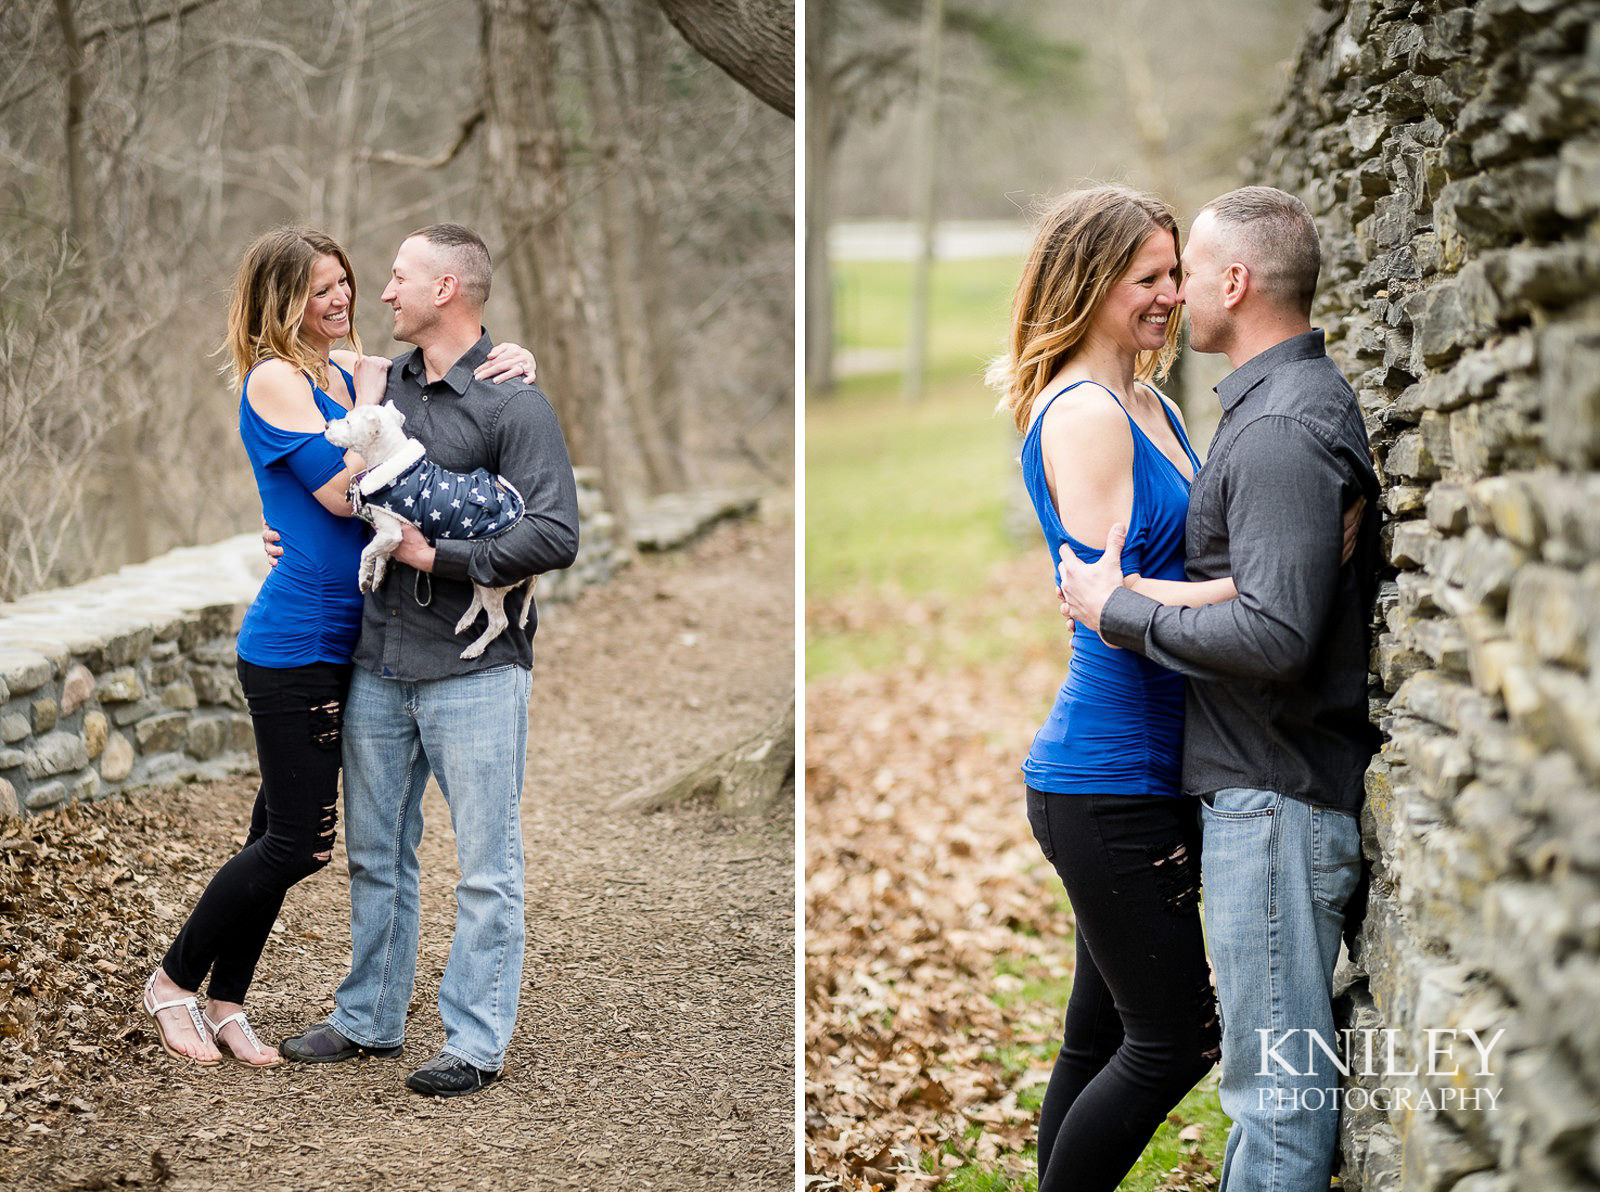 014 -Letchworth State Park engagement picture collage 6.jpg